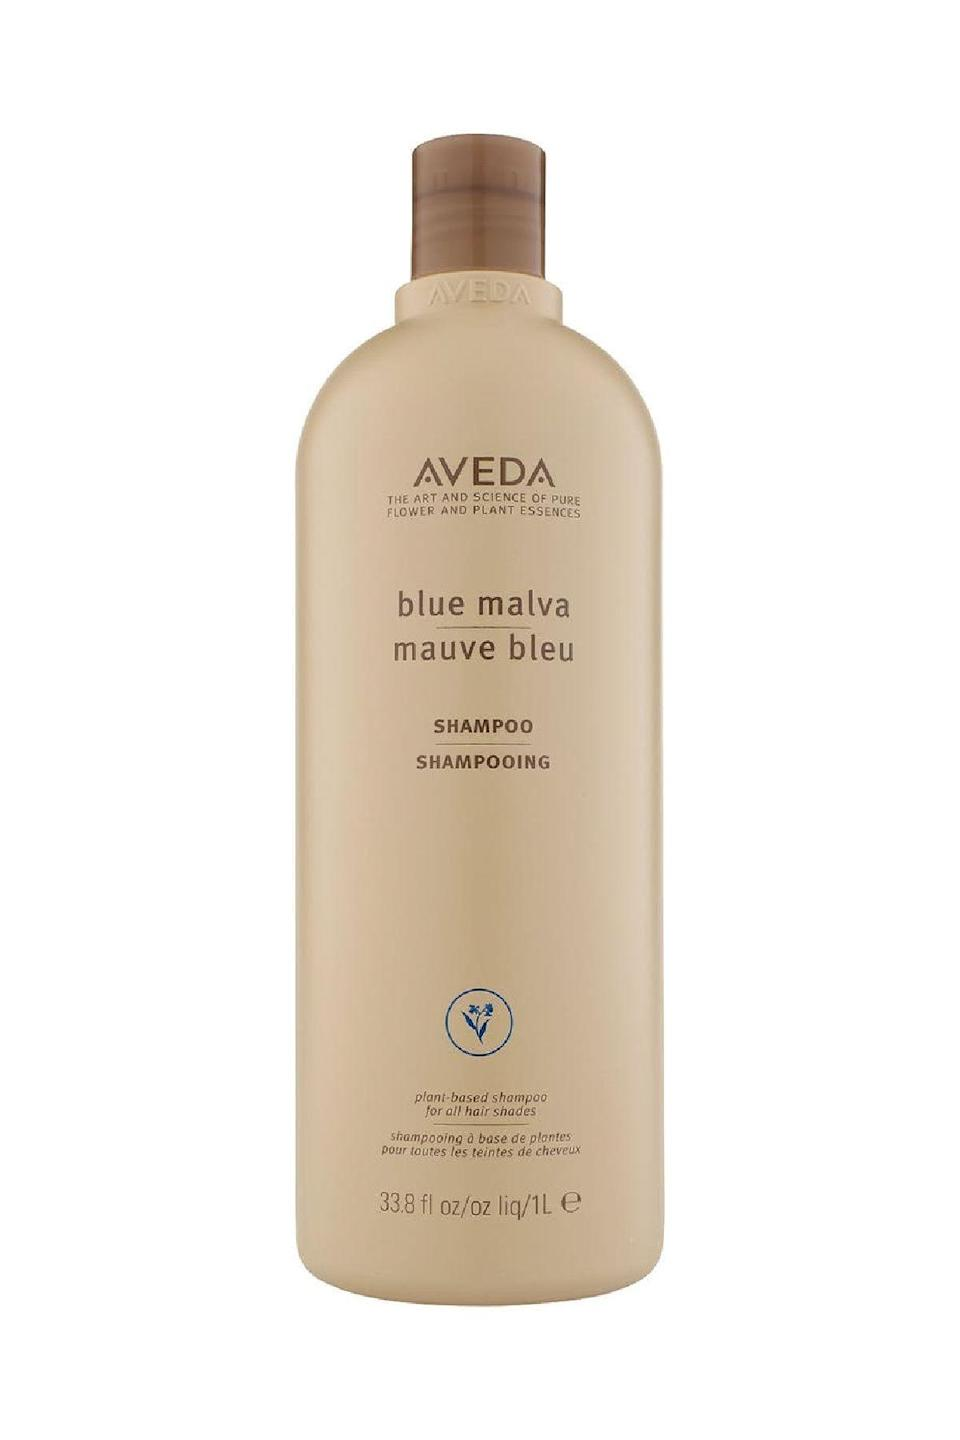 "<p><strong>Aveda</strong></p><p>nordstrom.com</p><p><strong>$57.00</strong></p><p><a href=""https://go.redirectingat.com?id=74968X1596630&url=https%3A%2F%2Fwww.nordstrom.com%2Fs%2Faveda-blue-malva-shampoo%2F3411877&sref=https%3A%2F%2Fwww.marieclaire.com%2Fbeauty%2Fhair%2Fg35970445%2Fbest-blue-shampoo-for-brunettes%2F"" rel=""nofollow noopener"" target=""_blank"" data-ylk=""slk:SHOP IT"" class=""link rapid-noclick-resp"">SHOP IT</a></p><p>Splurge for the big bottle of this glowingly-reviewed favorite, which taps the perennial blue malva herb to counteract unwanted brassiness in blonde, brunette and even gray strands. </p>"